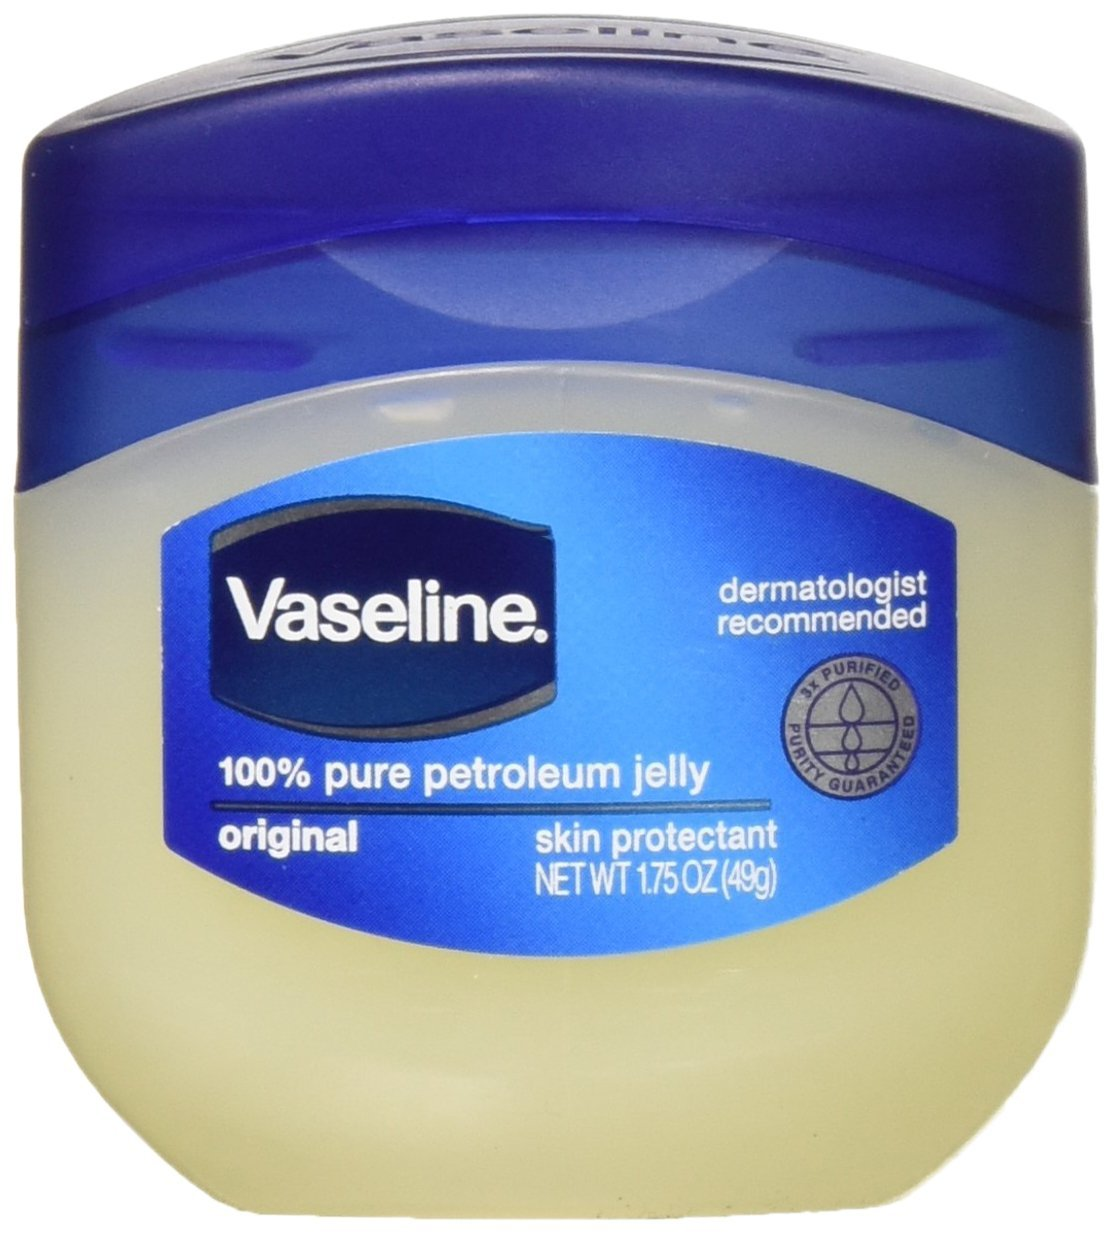 Vaseline 100% Pure Petroleum Jelly Original Skin Protectant, 1.75 OZ Travel Size (Pack of 3)